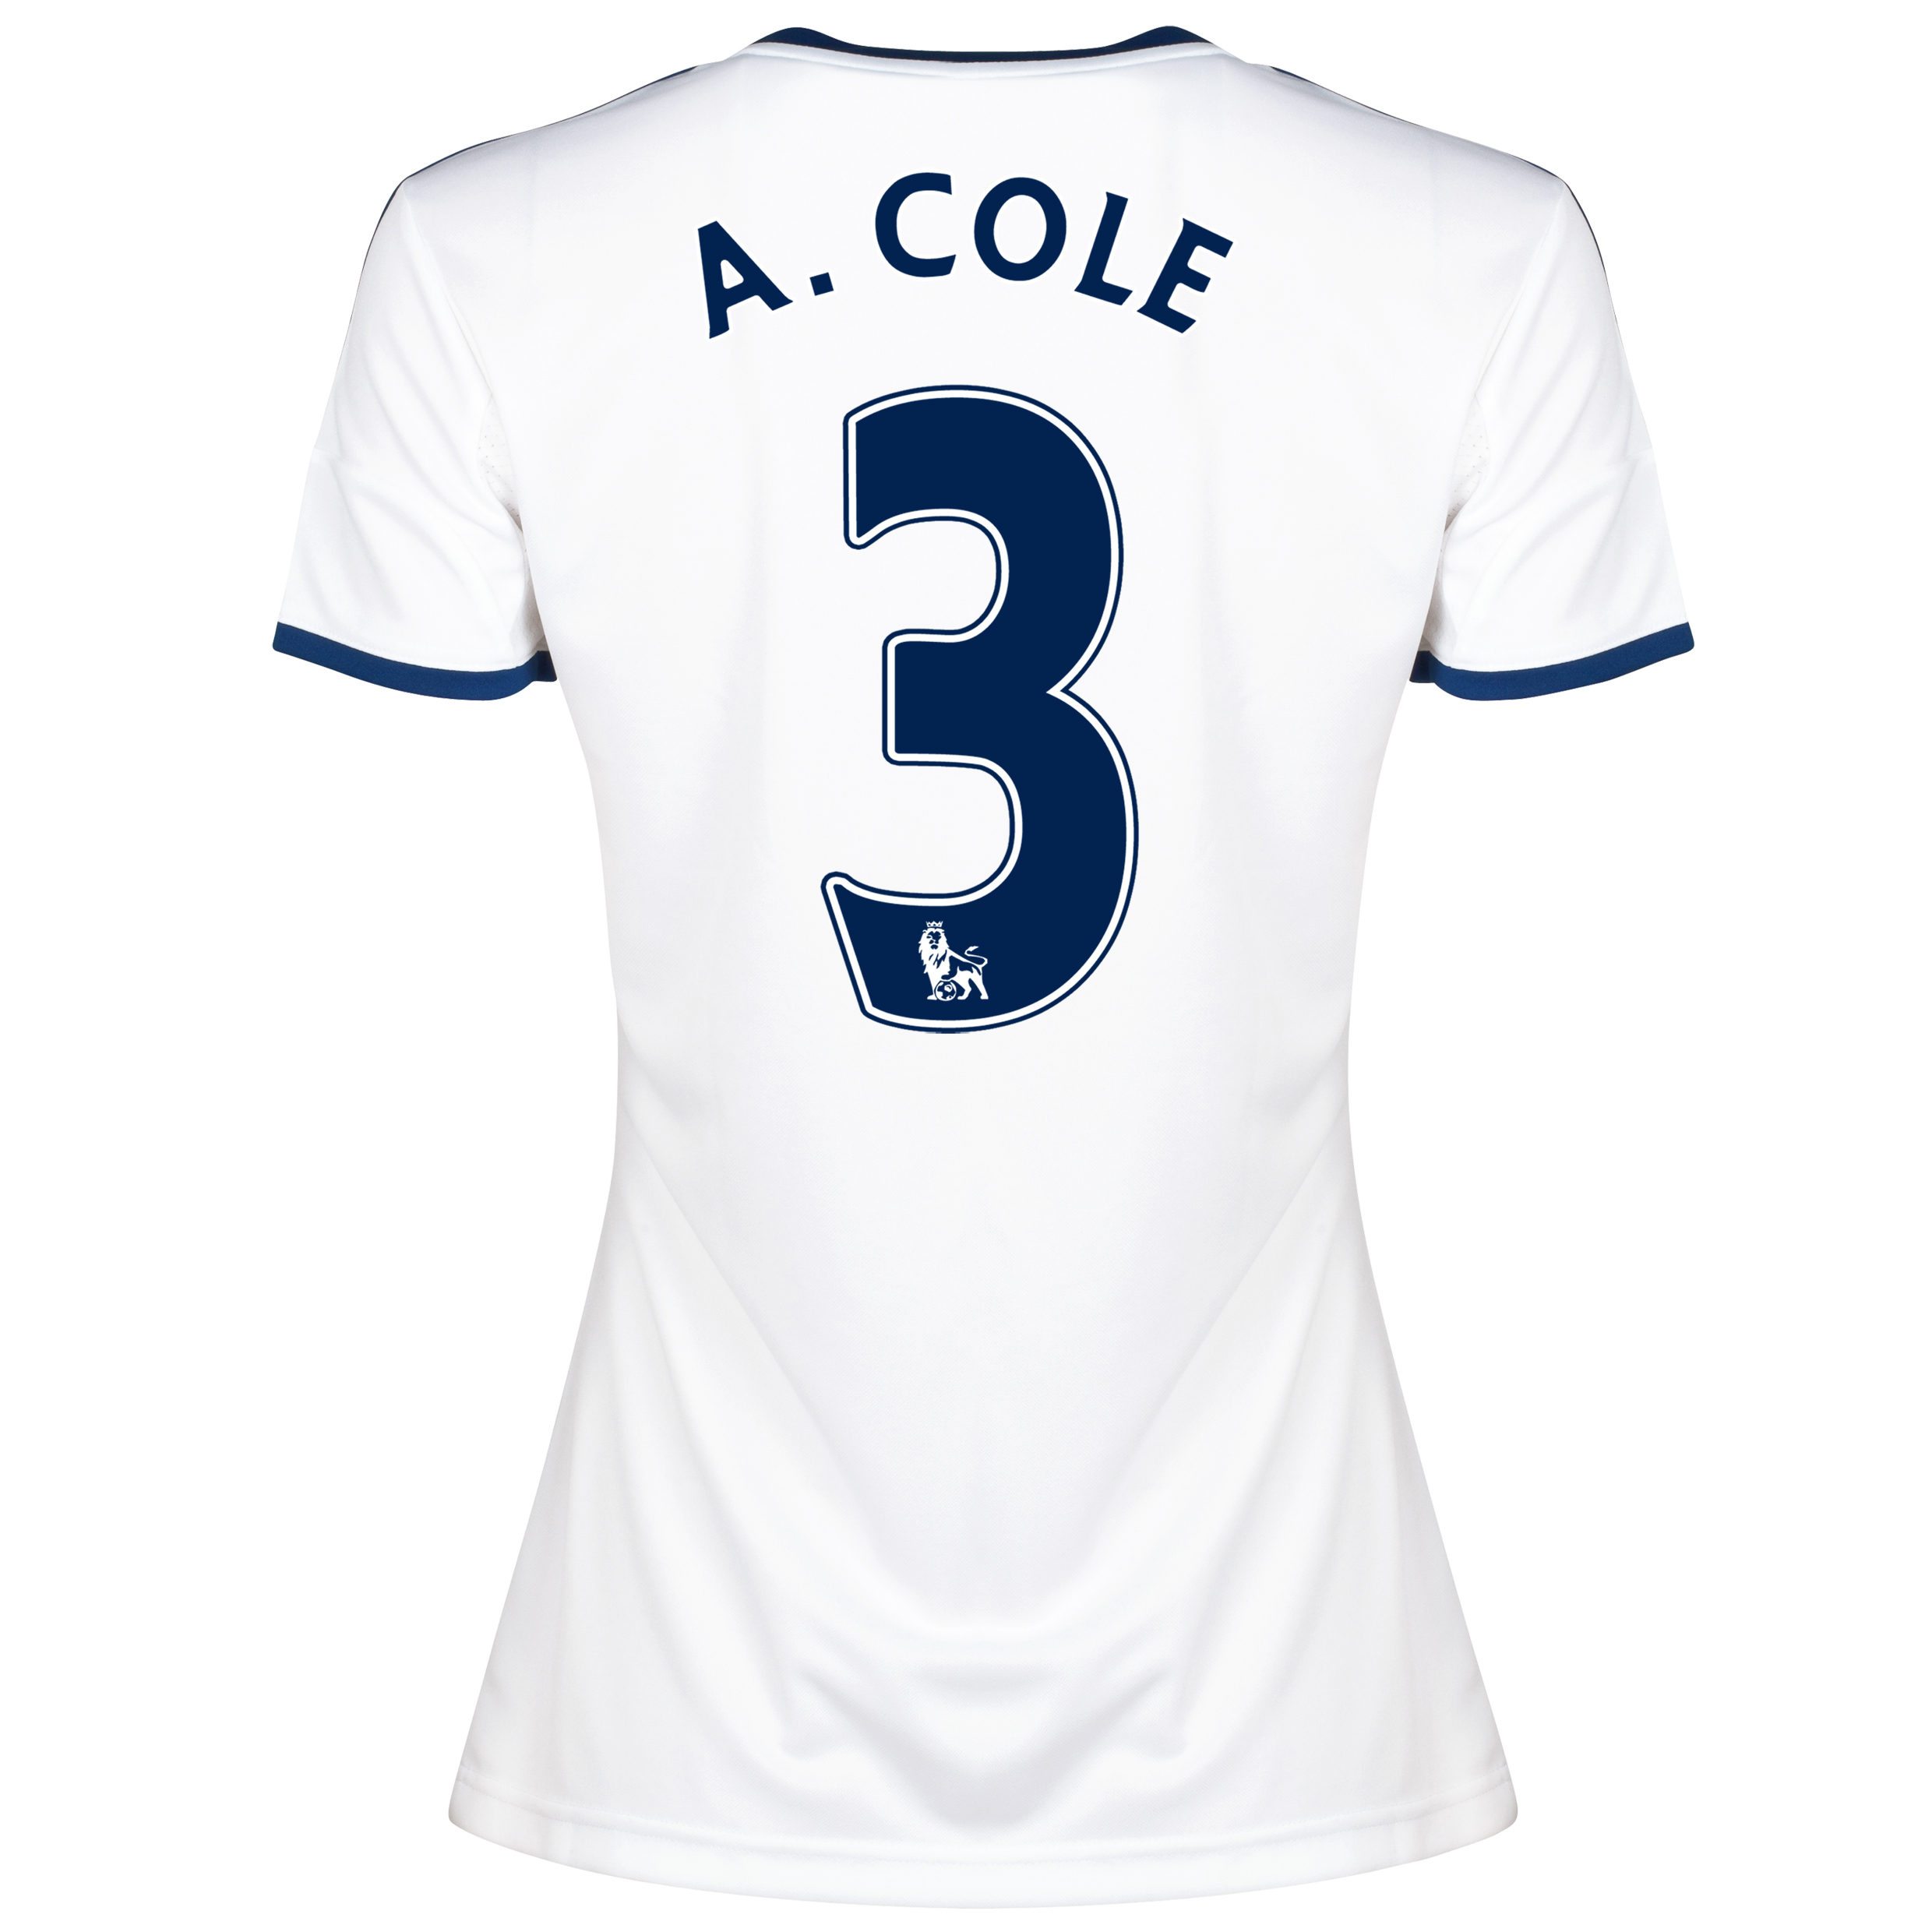 Chelsea Away Shirt 2013/14 -Womens with A.Cole 3 printing